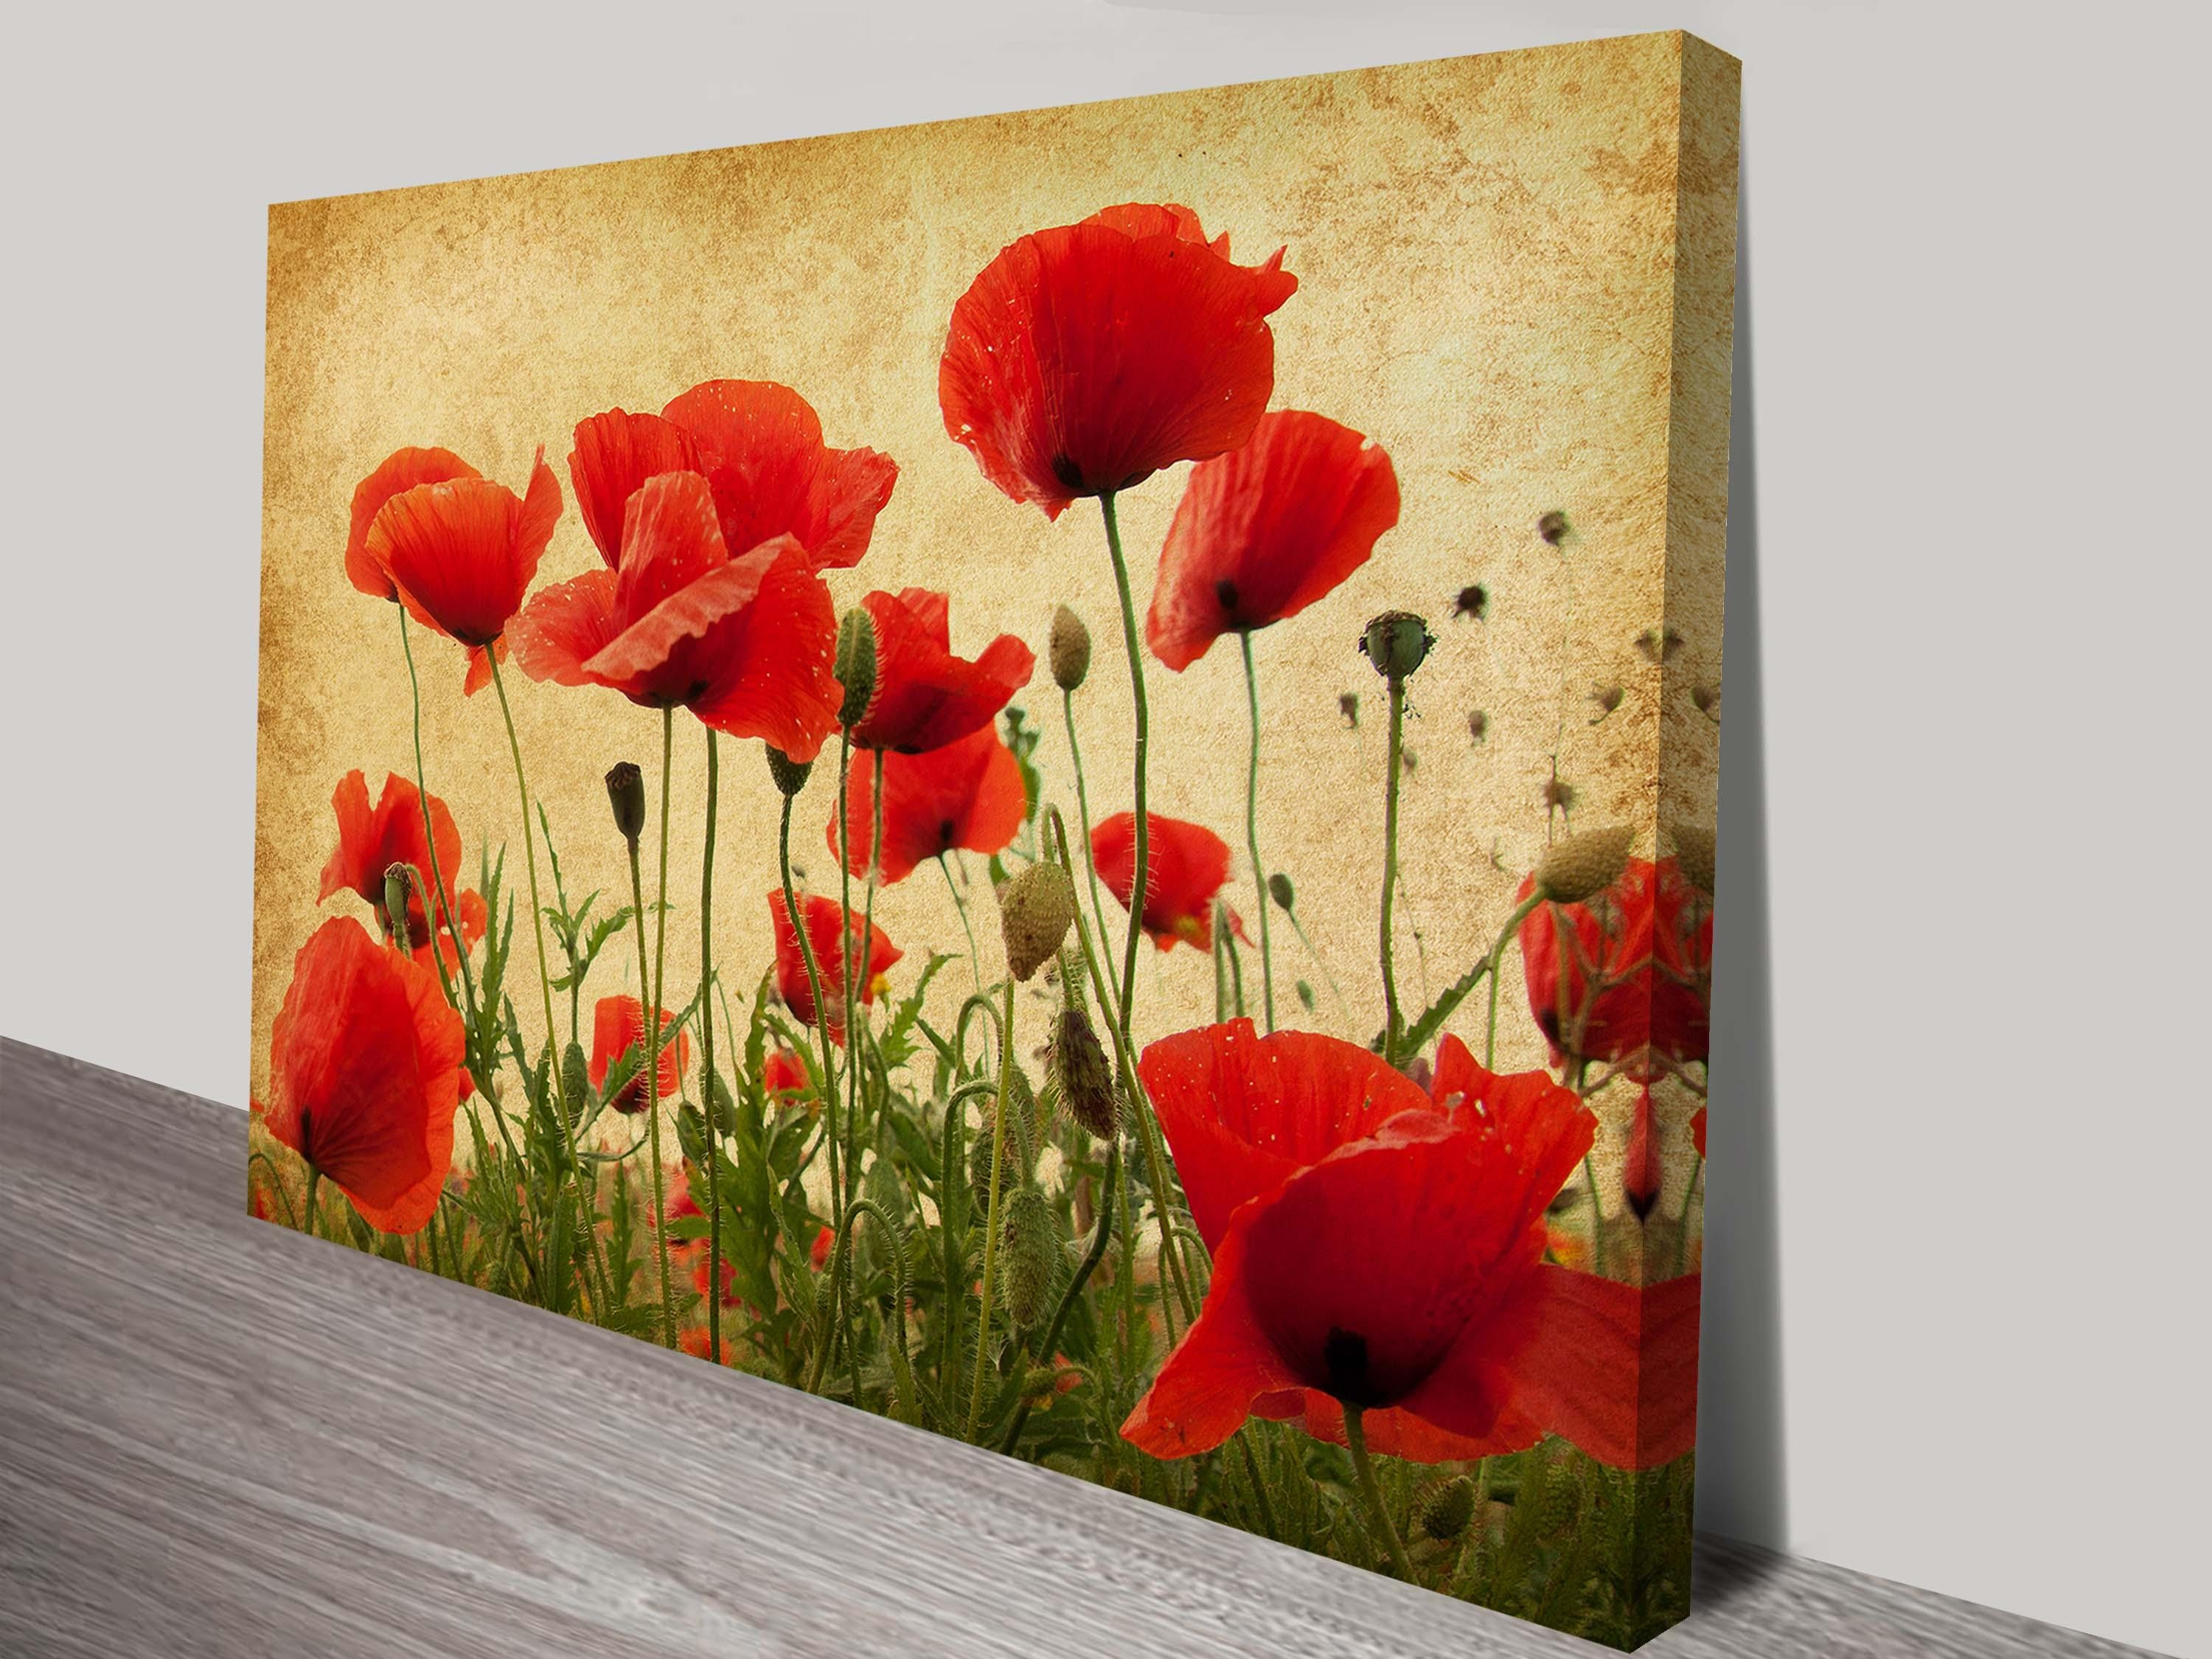 Vintage Poppies Flower Art | Canvas Prints Melbourne throughout Red Poppy Canvas Wall Art